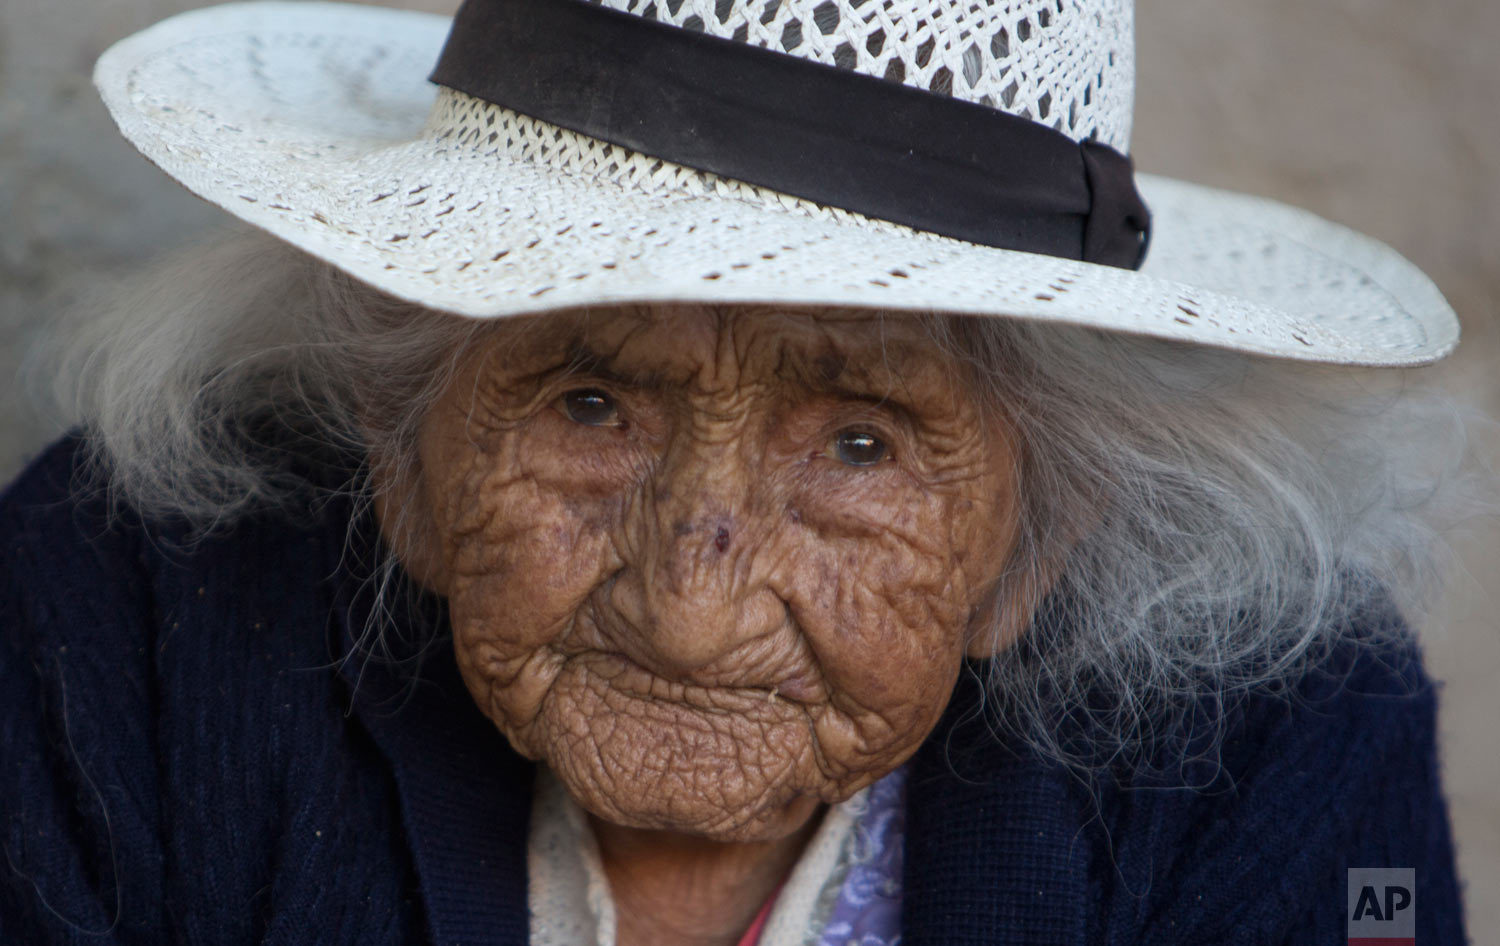 Julia Flores Colque eyes the camera while sitting outside her home in Sacaba, Bolivia, Aug. 23, 2018. Her national identity card says Flores Colque was born on Oct. 26, 1900 in a mining camp in the Bolivian mountains. At 117 and just over 10 months, she would be the oldest woman in the Andean nation and perhaps the oldest living person in the world. (AP Photo/Juan Karita)